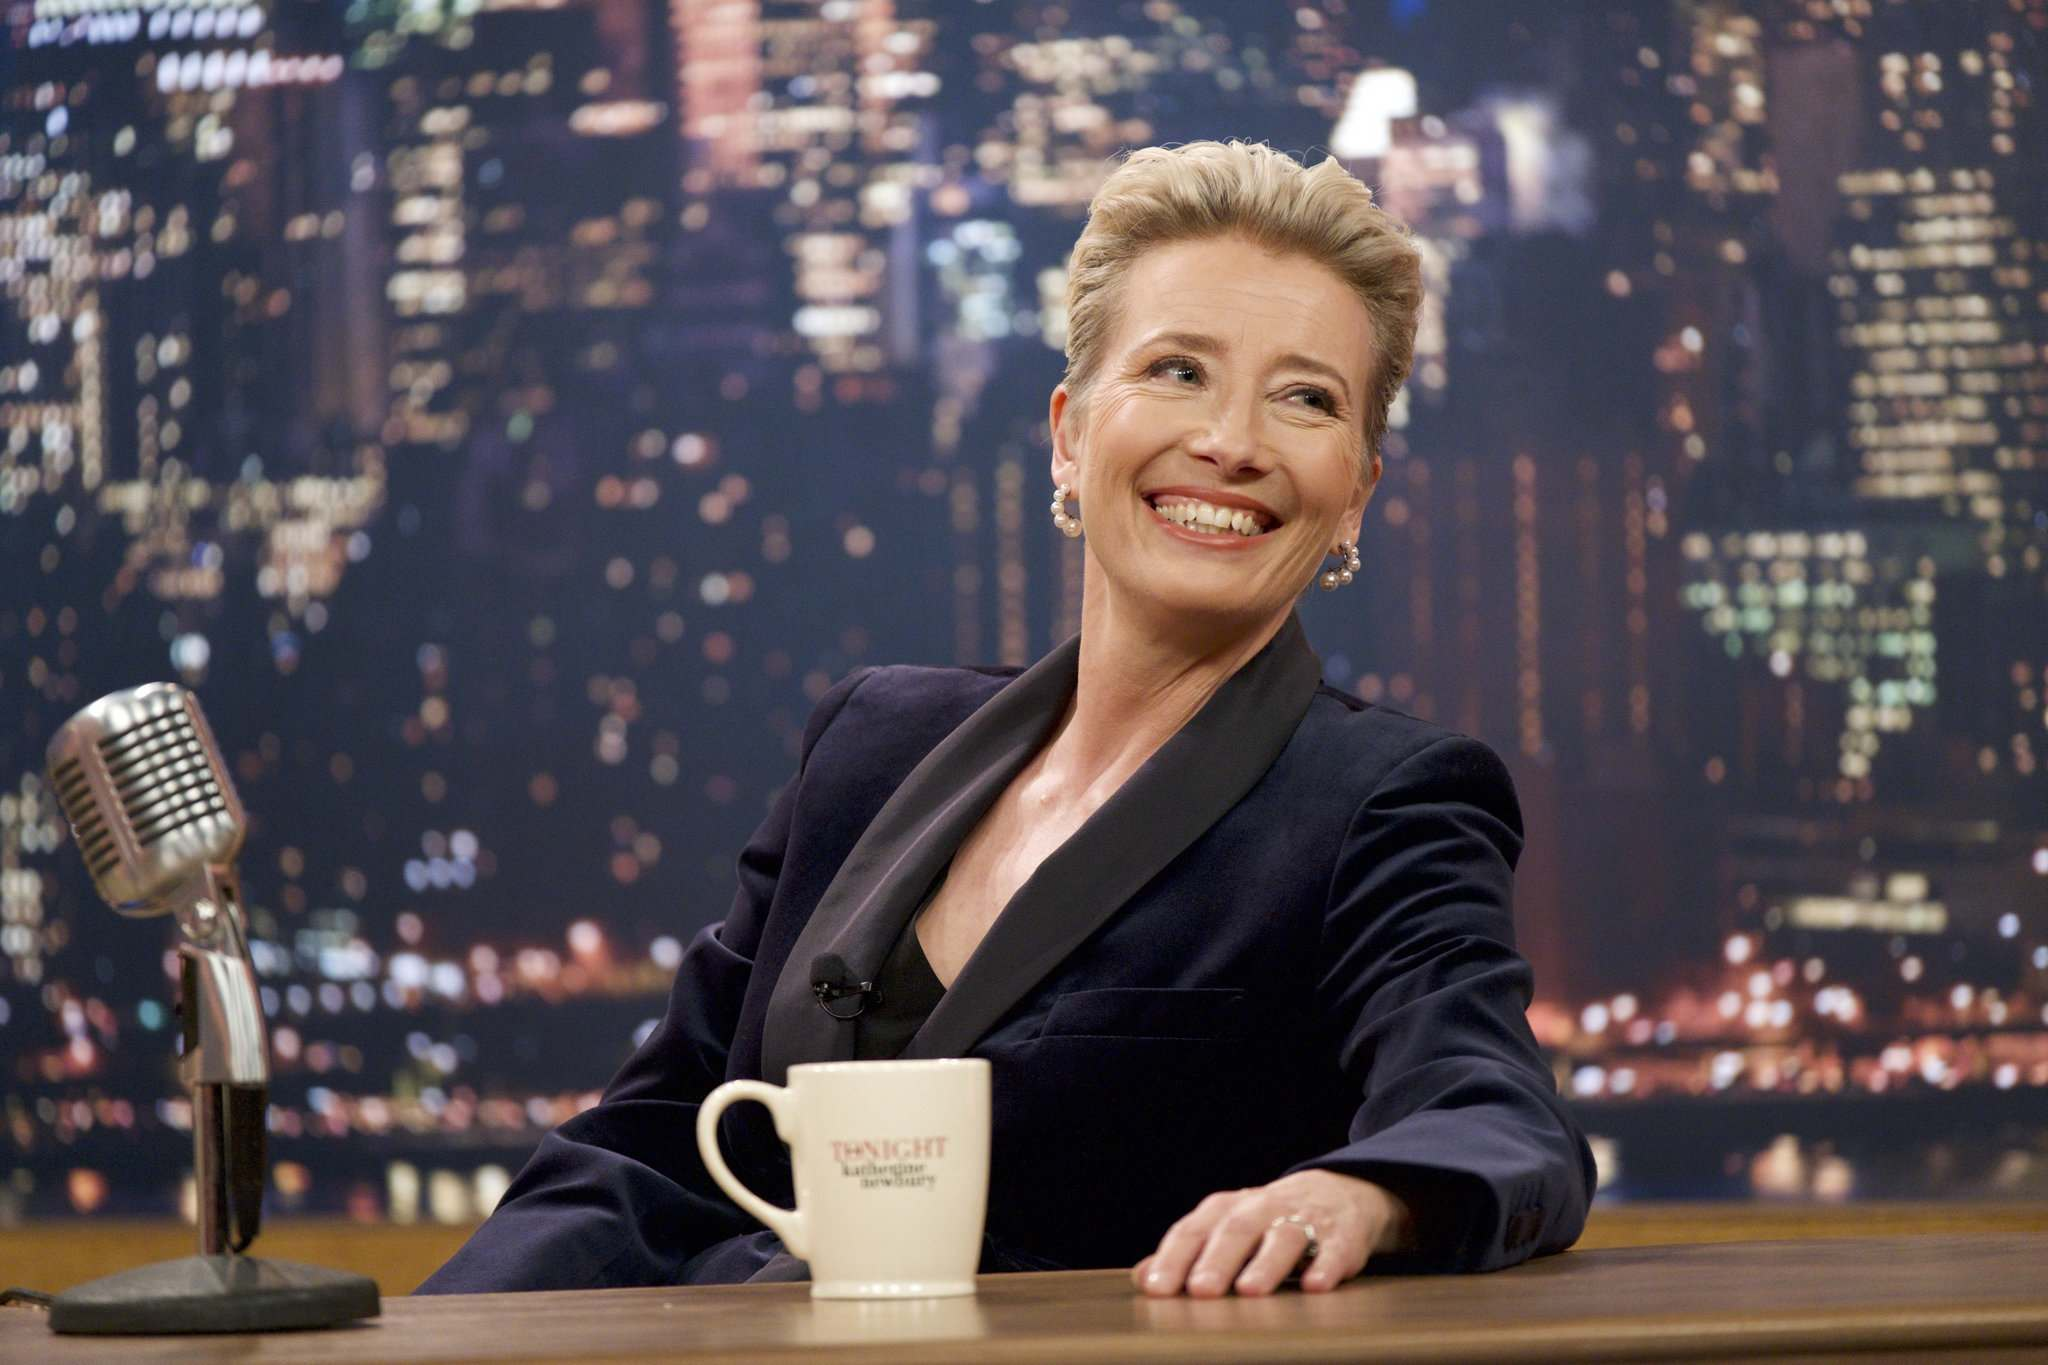 Emily Aragones / Amazon Studios / The Associated Press</p><p>Emma Thompson in a scene from 'Late Night.'</p>